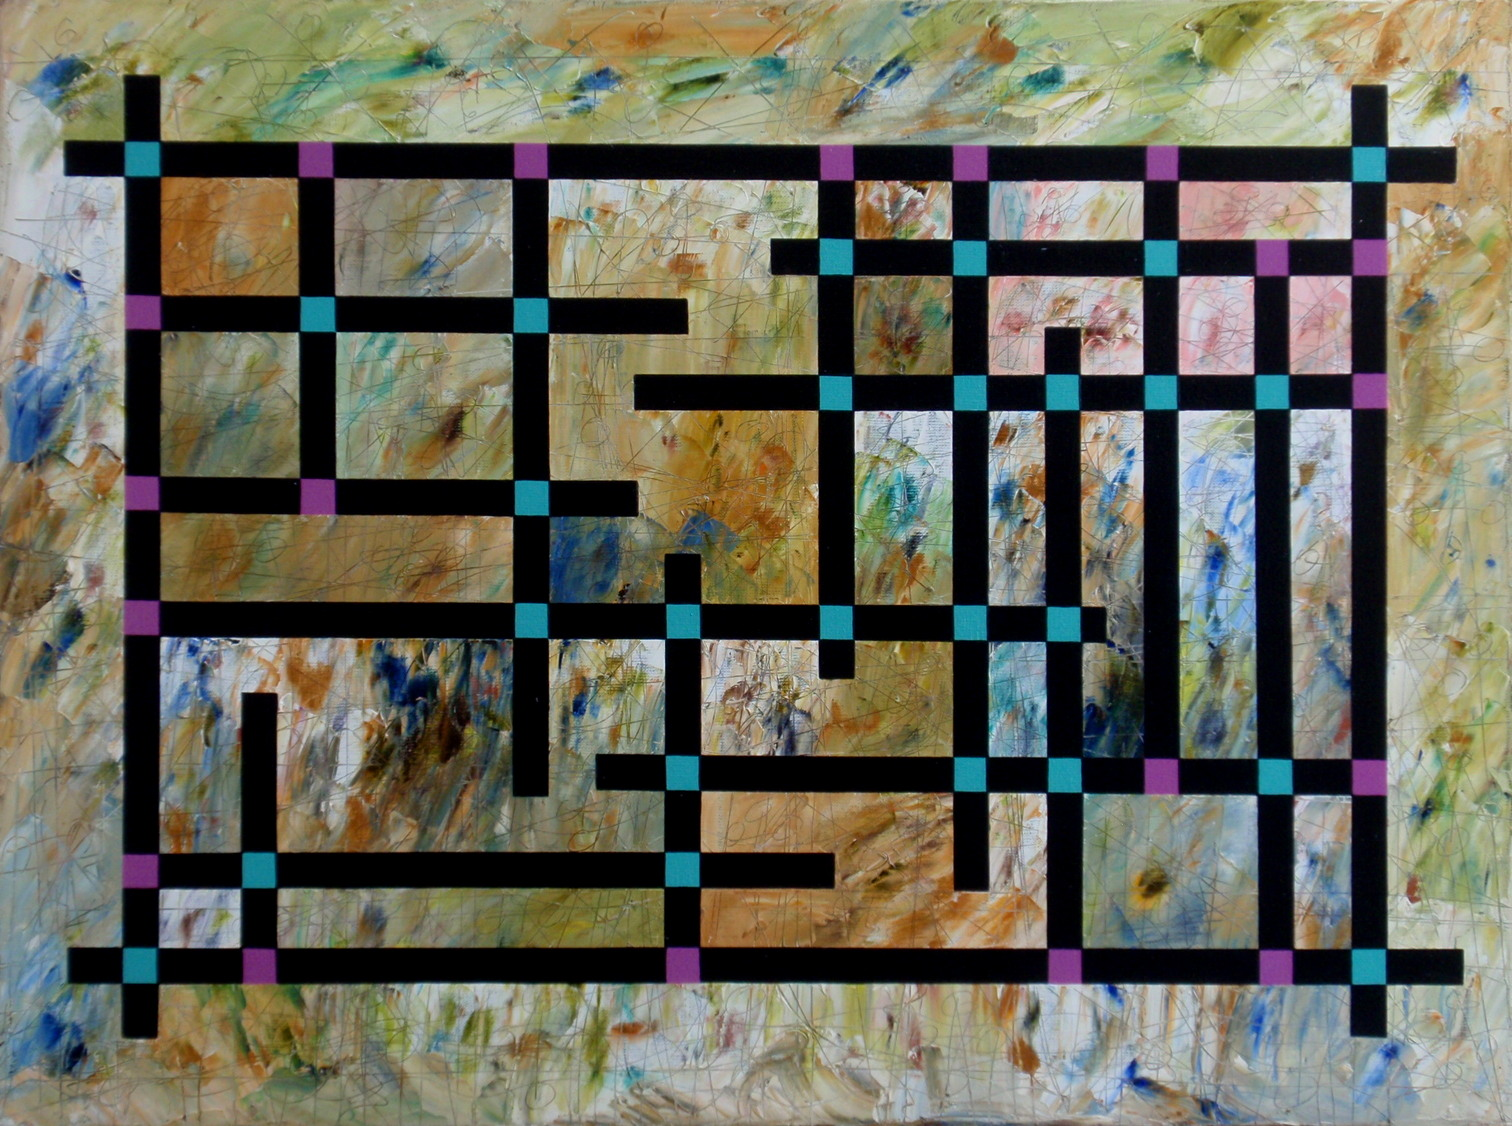 2005. Denkraam/Mindfullnes.  Oil on canvas. 60x80 cm.